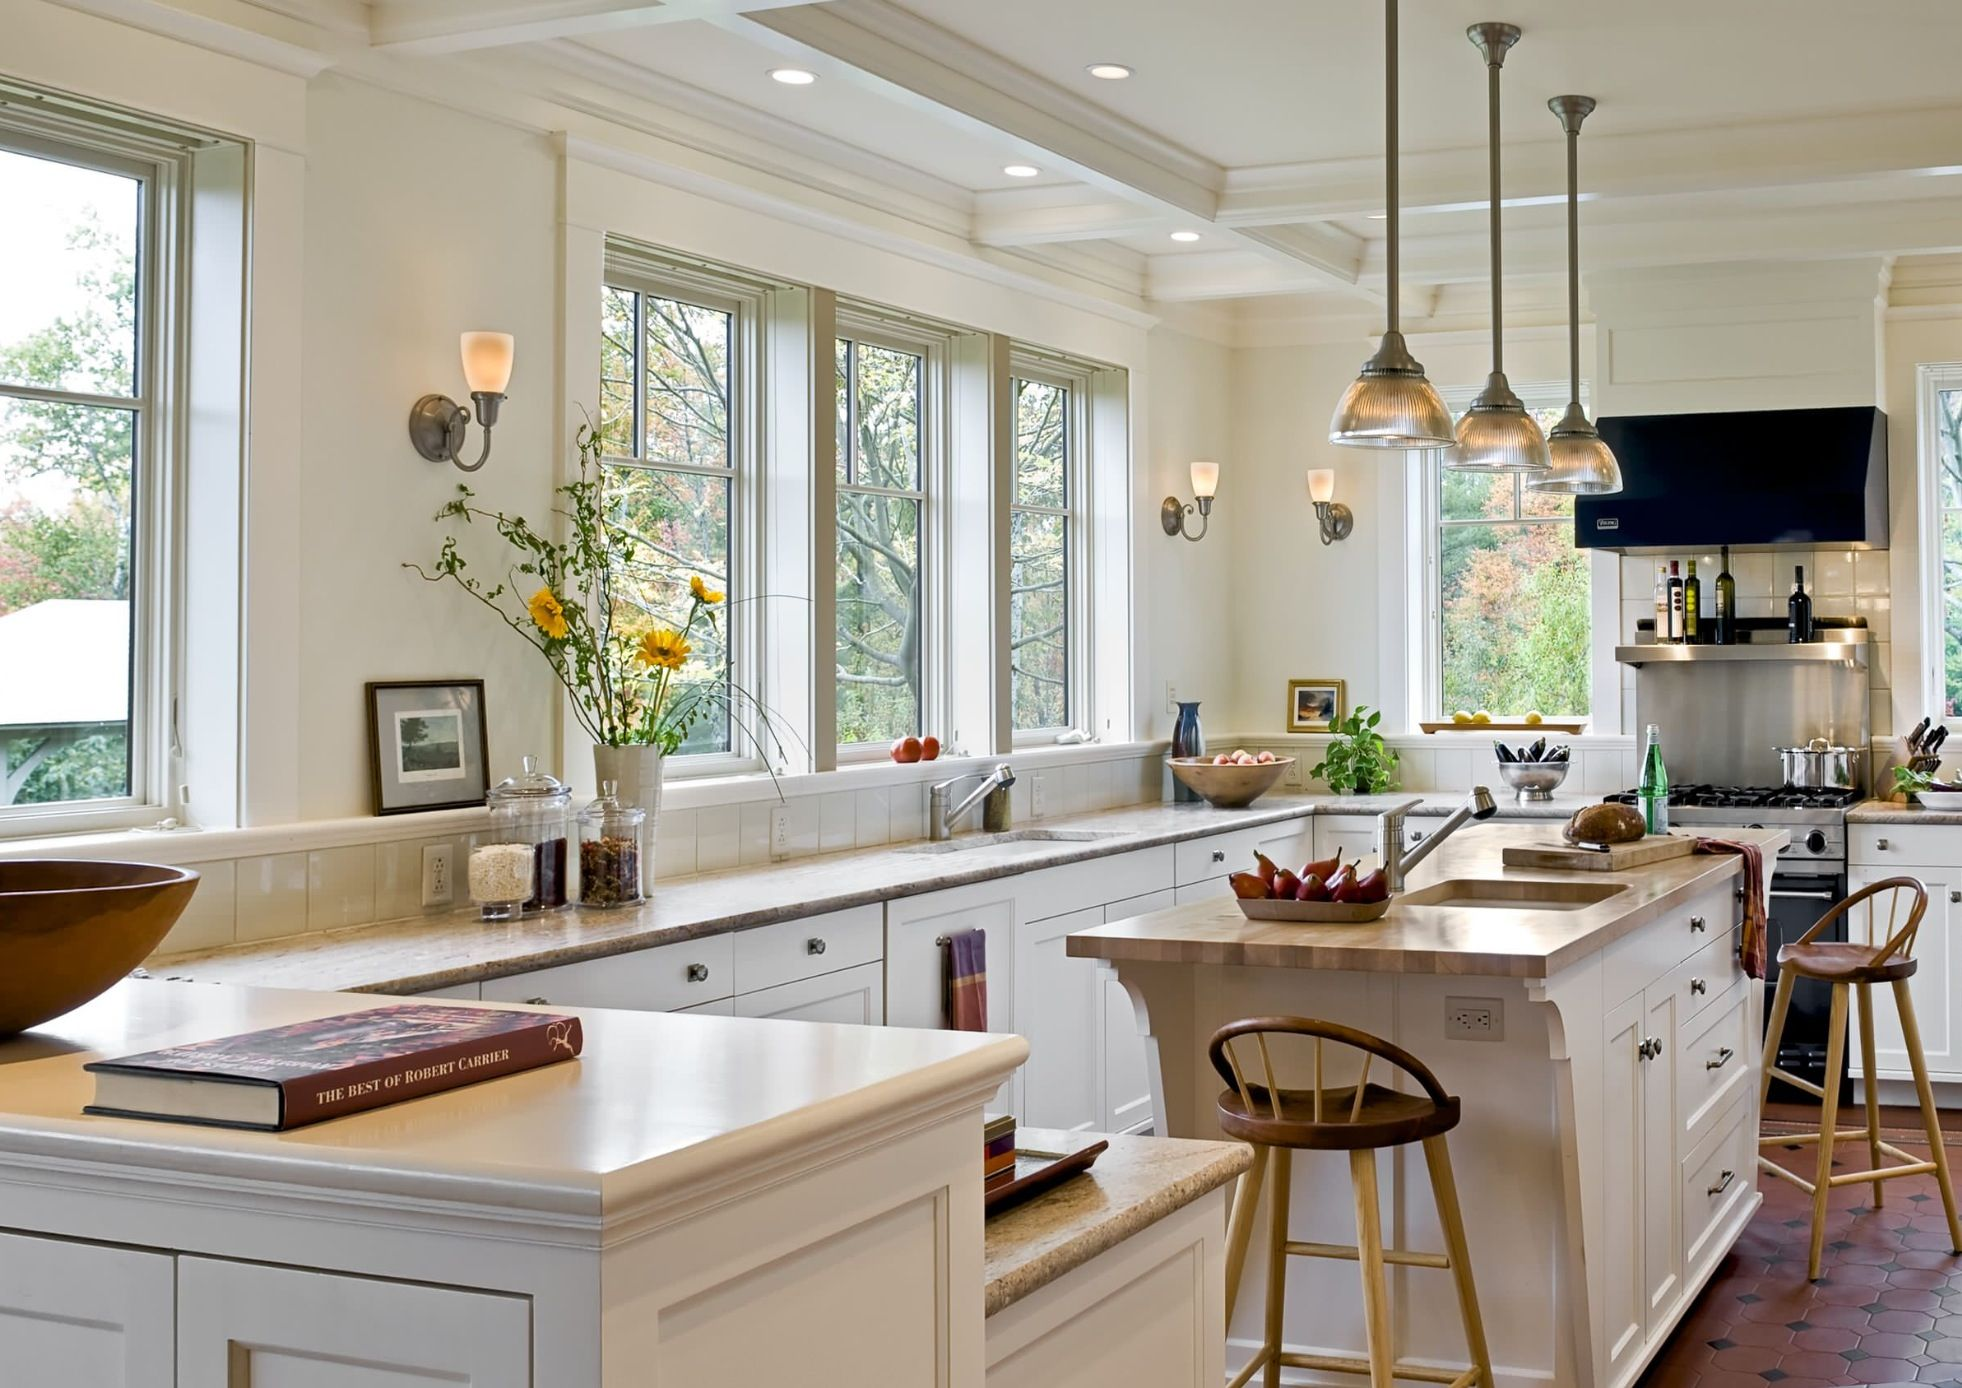 Layout Kitchens Without Upper Cabinets Kitchen Layout Home Kitchens